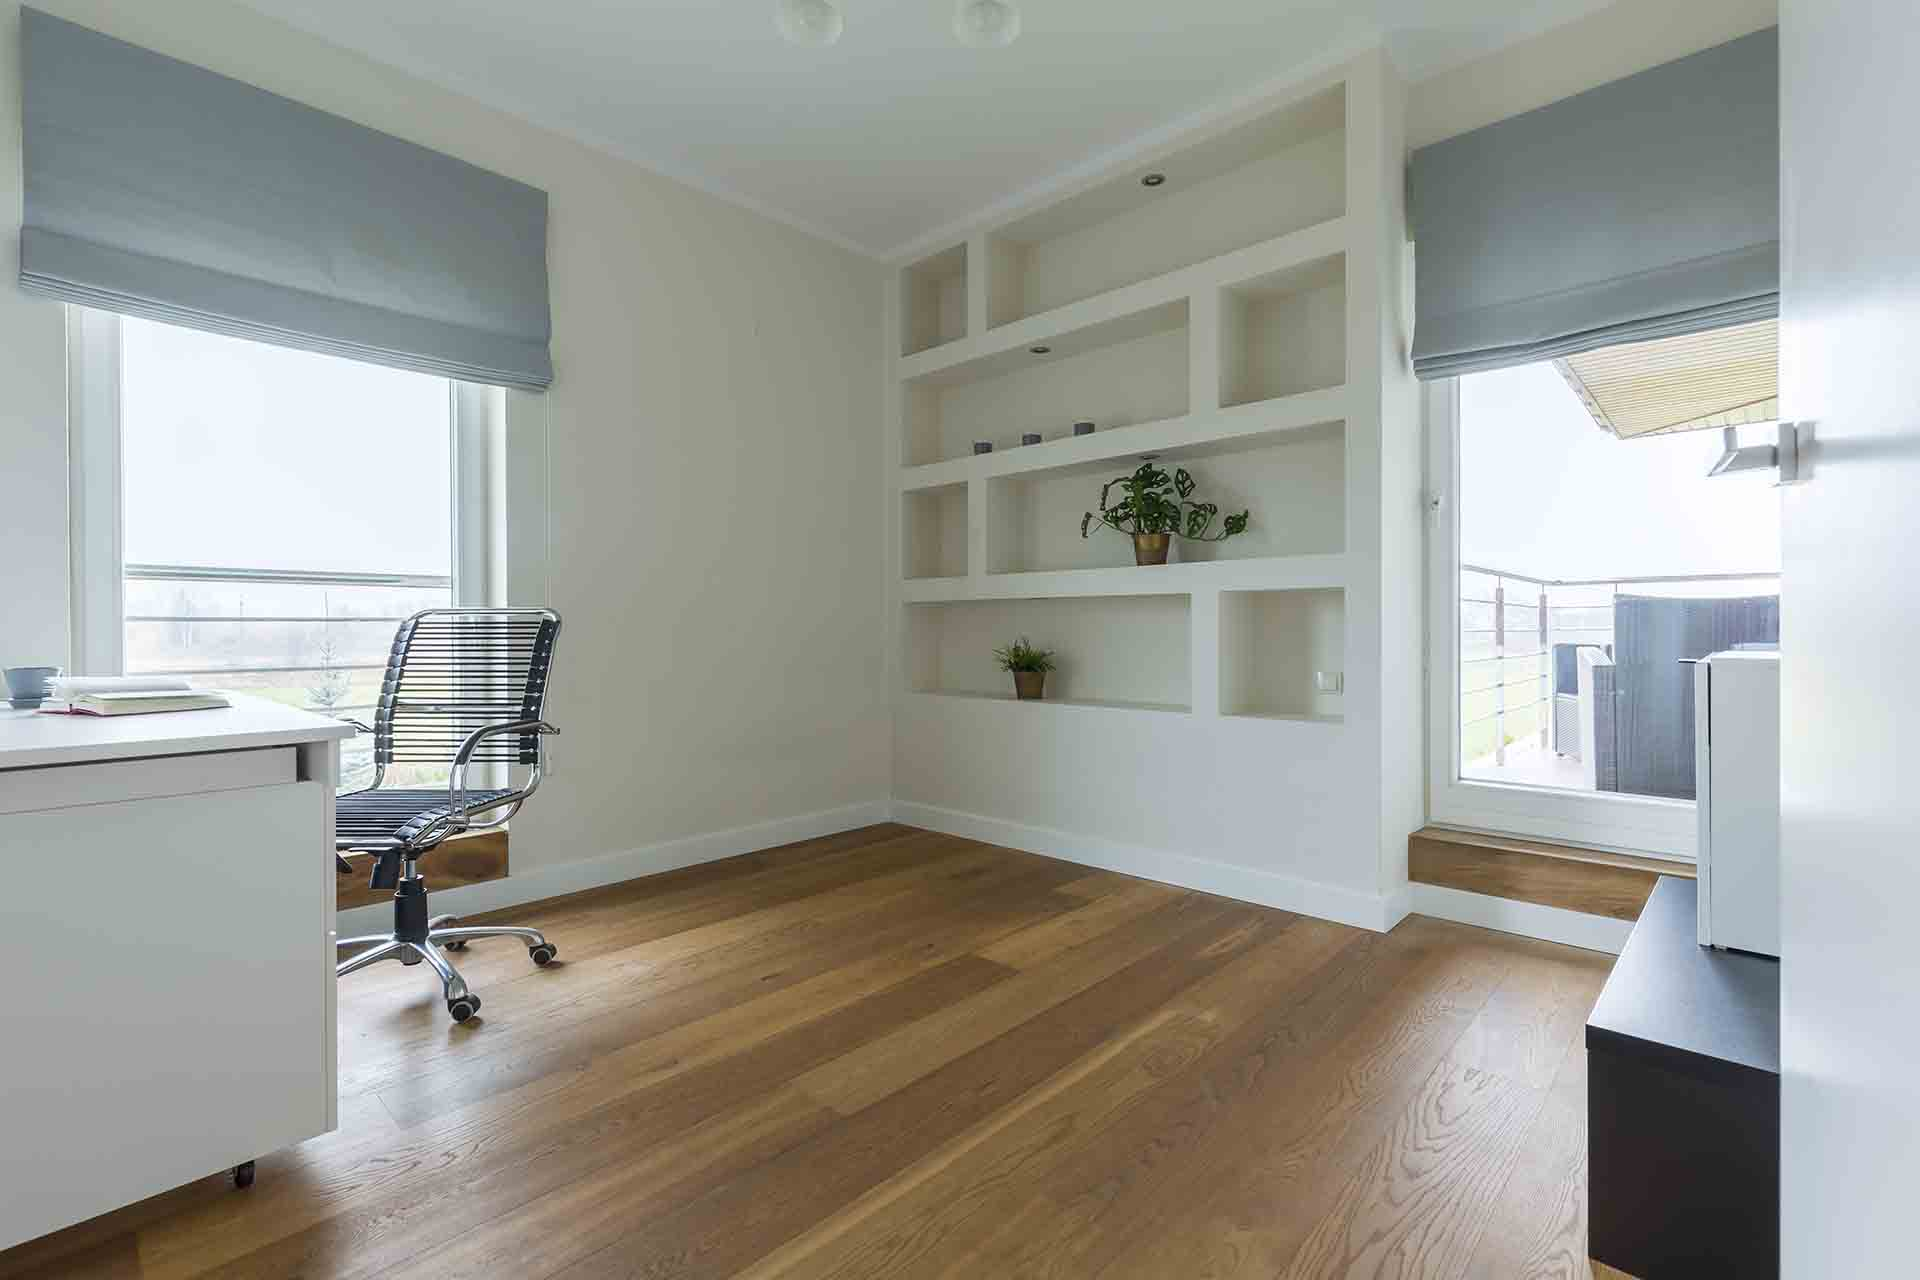 Top tips for maintaining and cleaning wooden floors